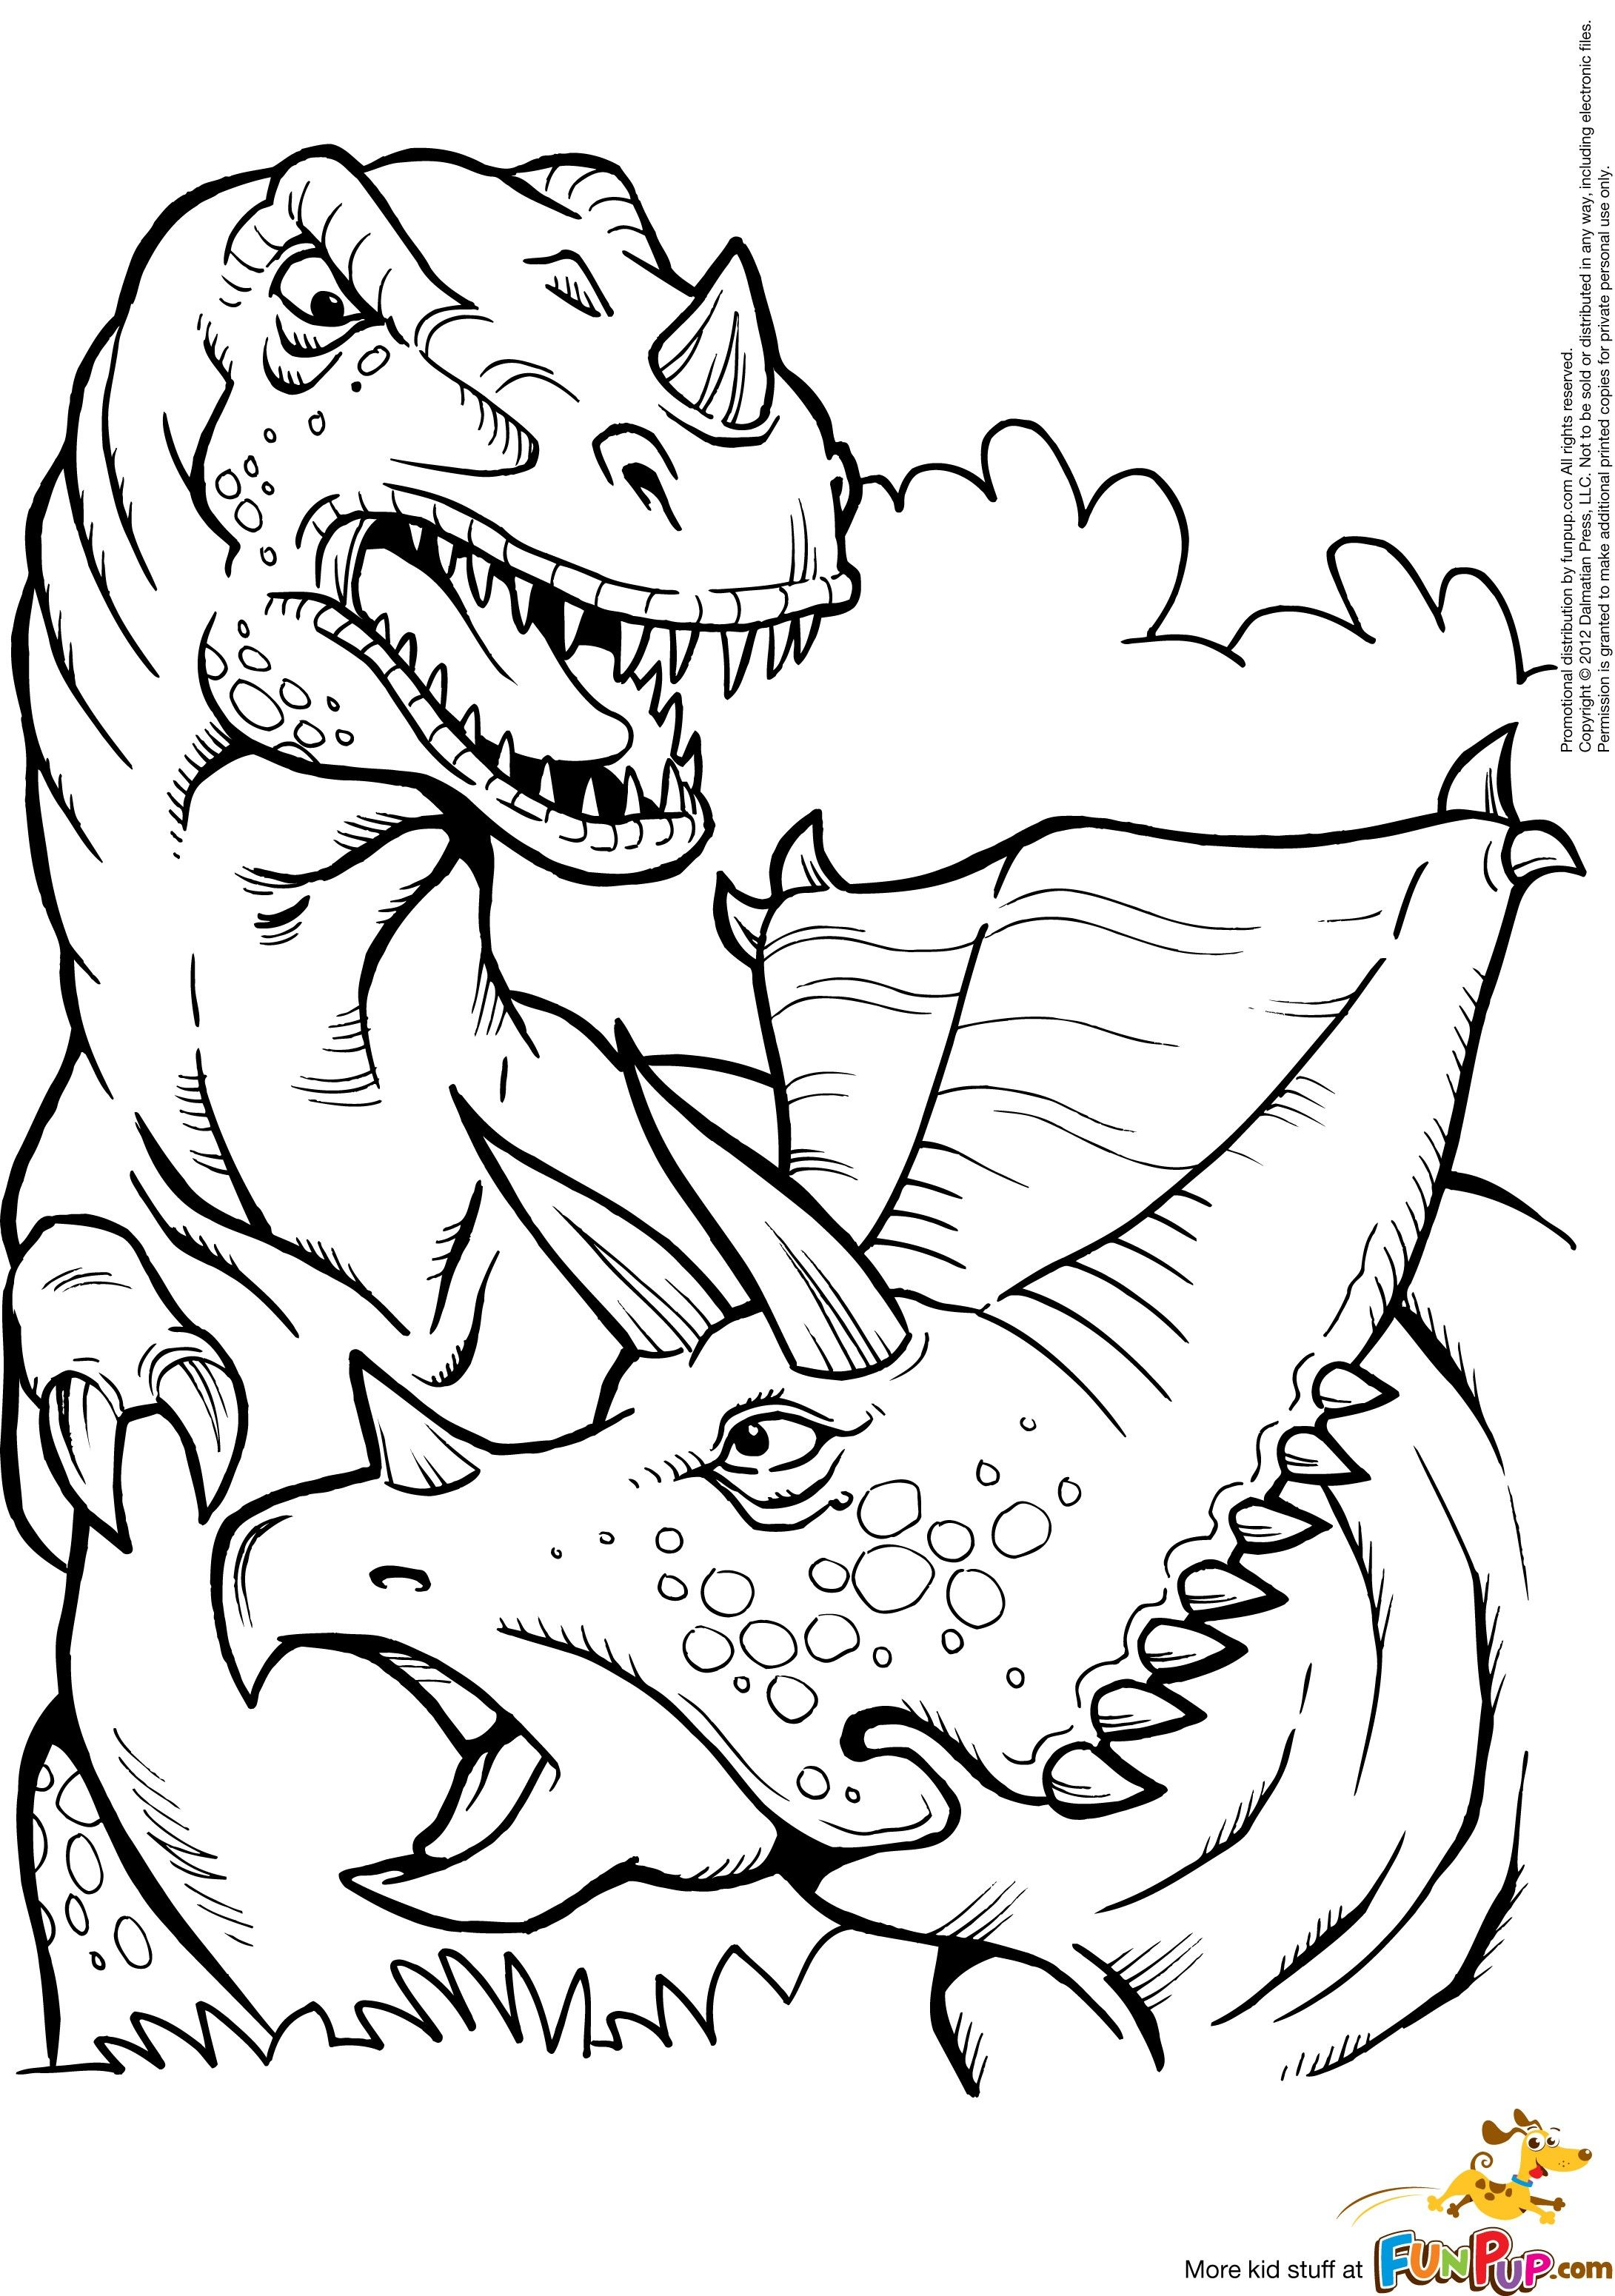 T Rex And Triceratops 0 00 Coloring Animals Bugs Pinterest